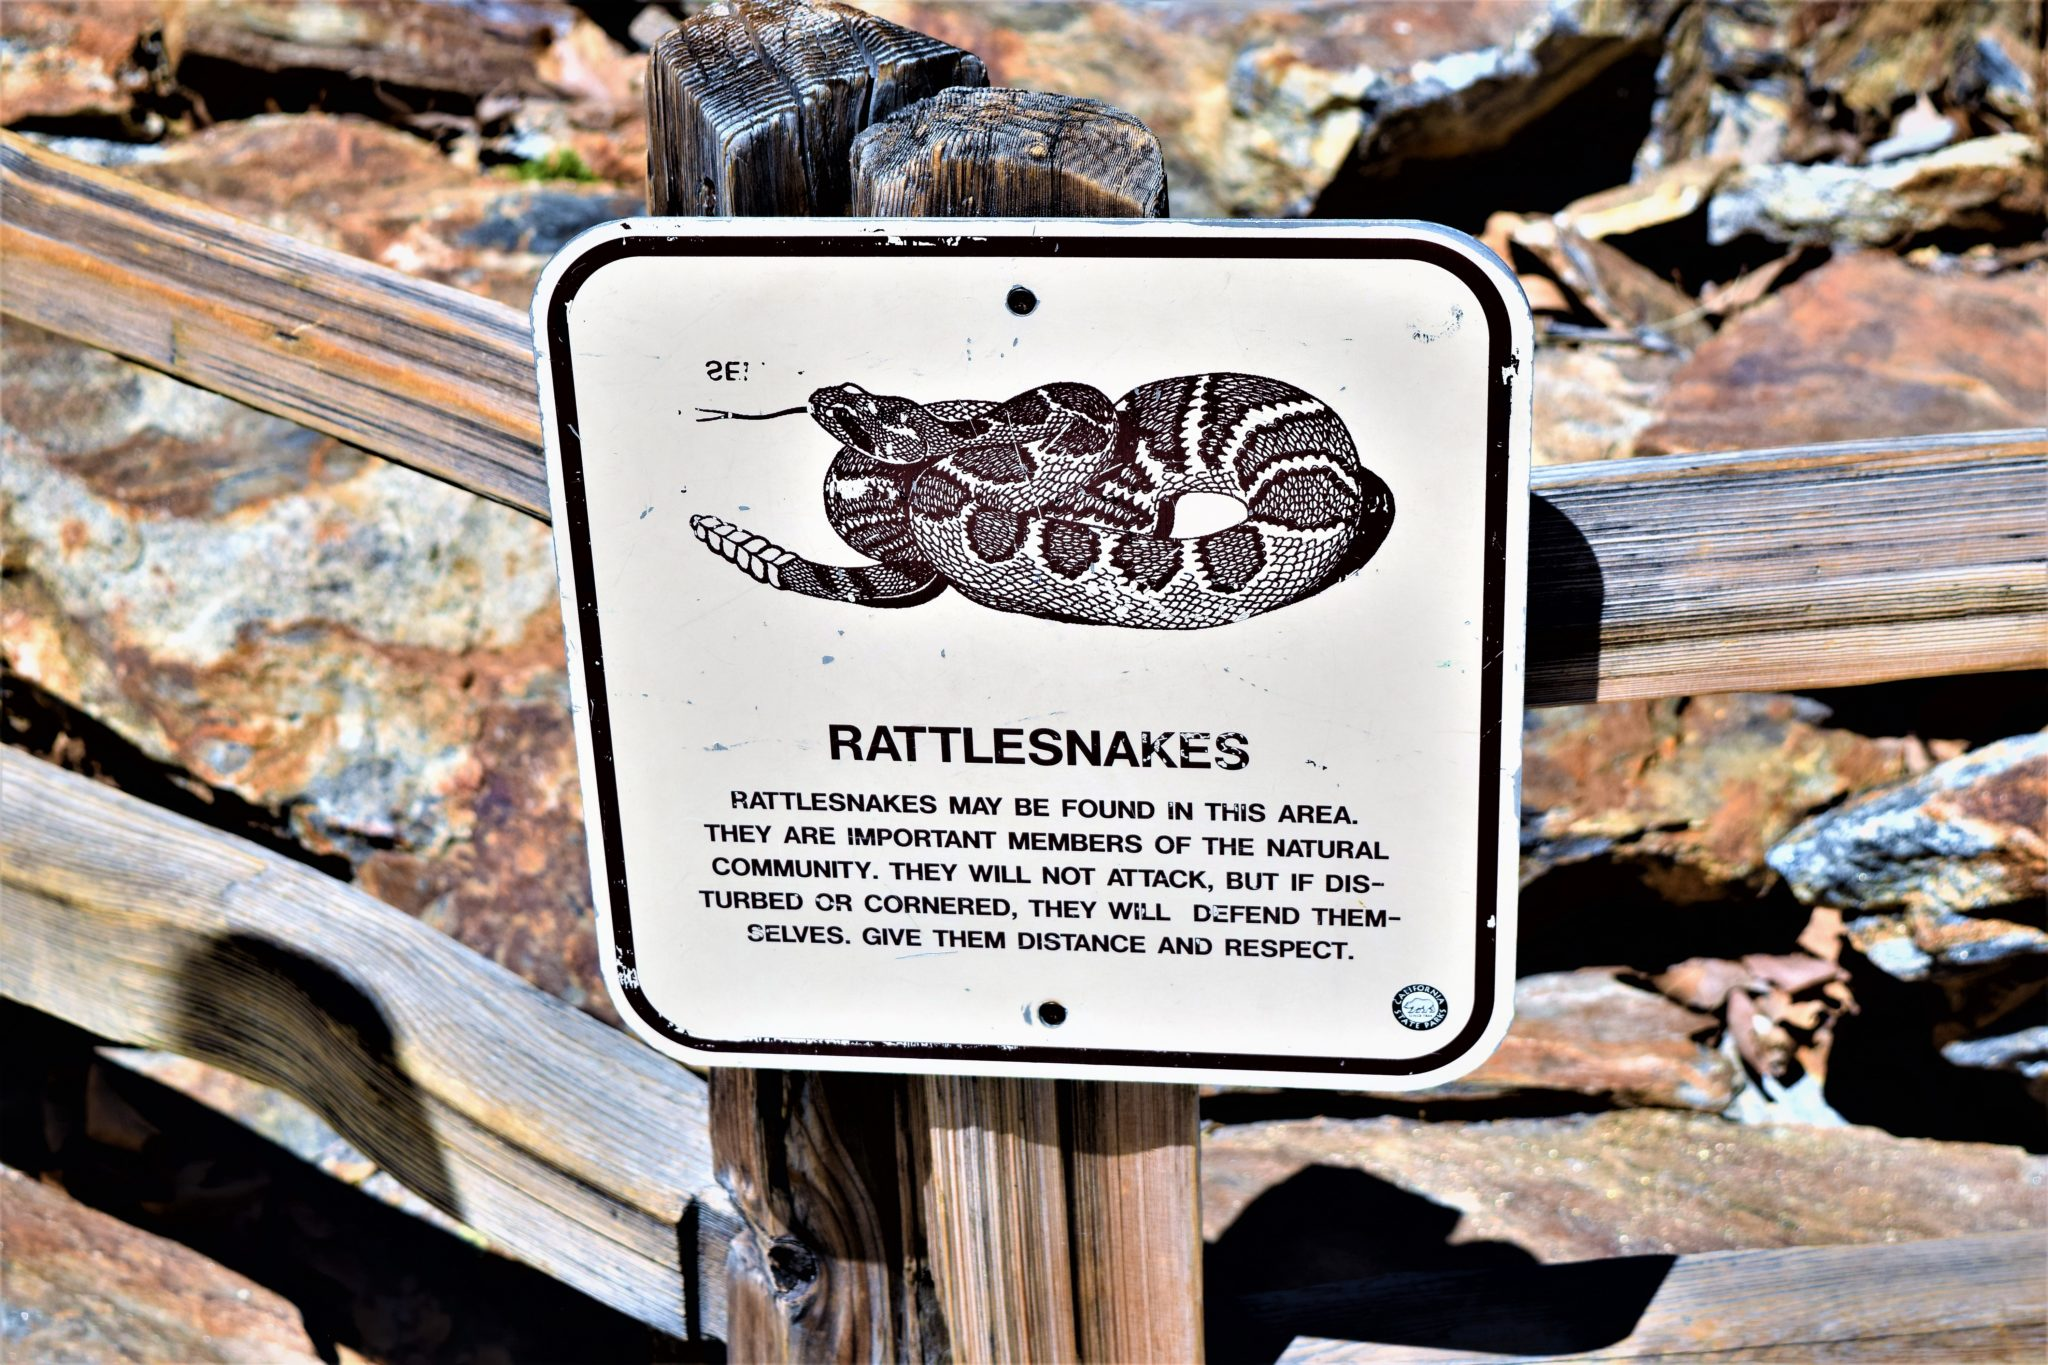 Rattlesnakes sign, Popp park, Palm Springs tramway, California